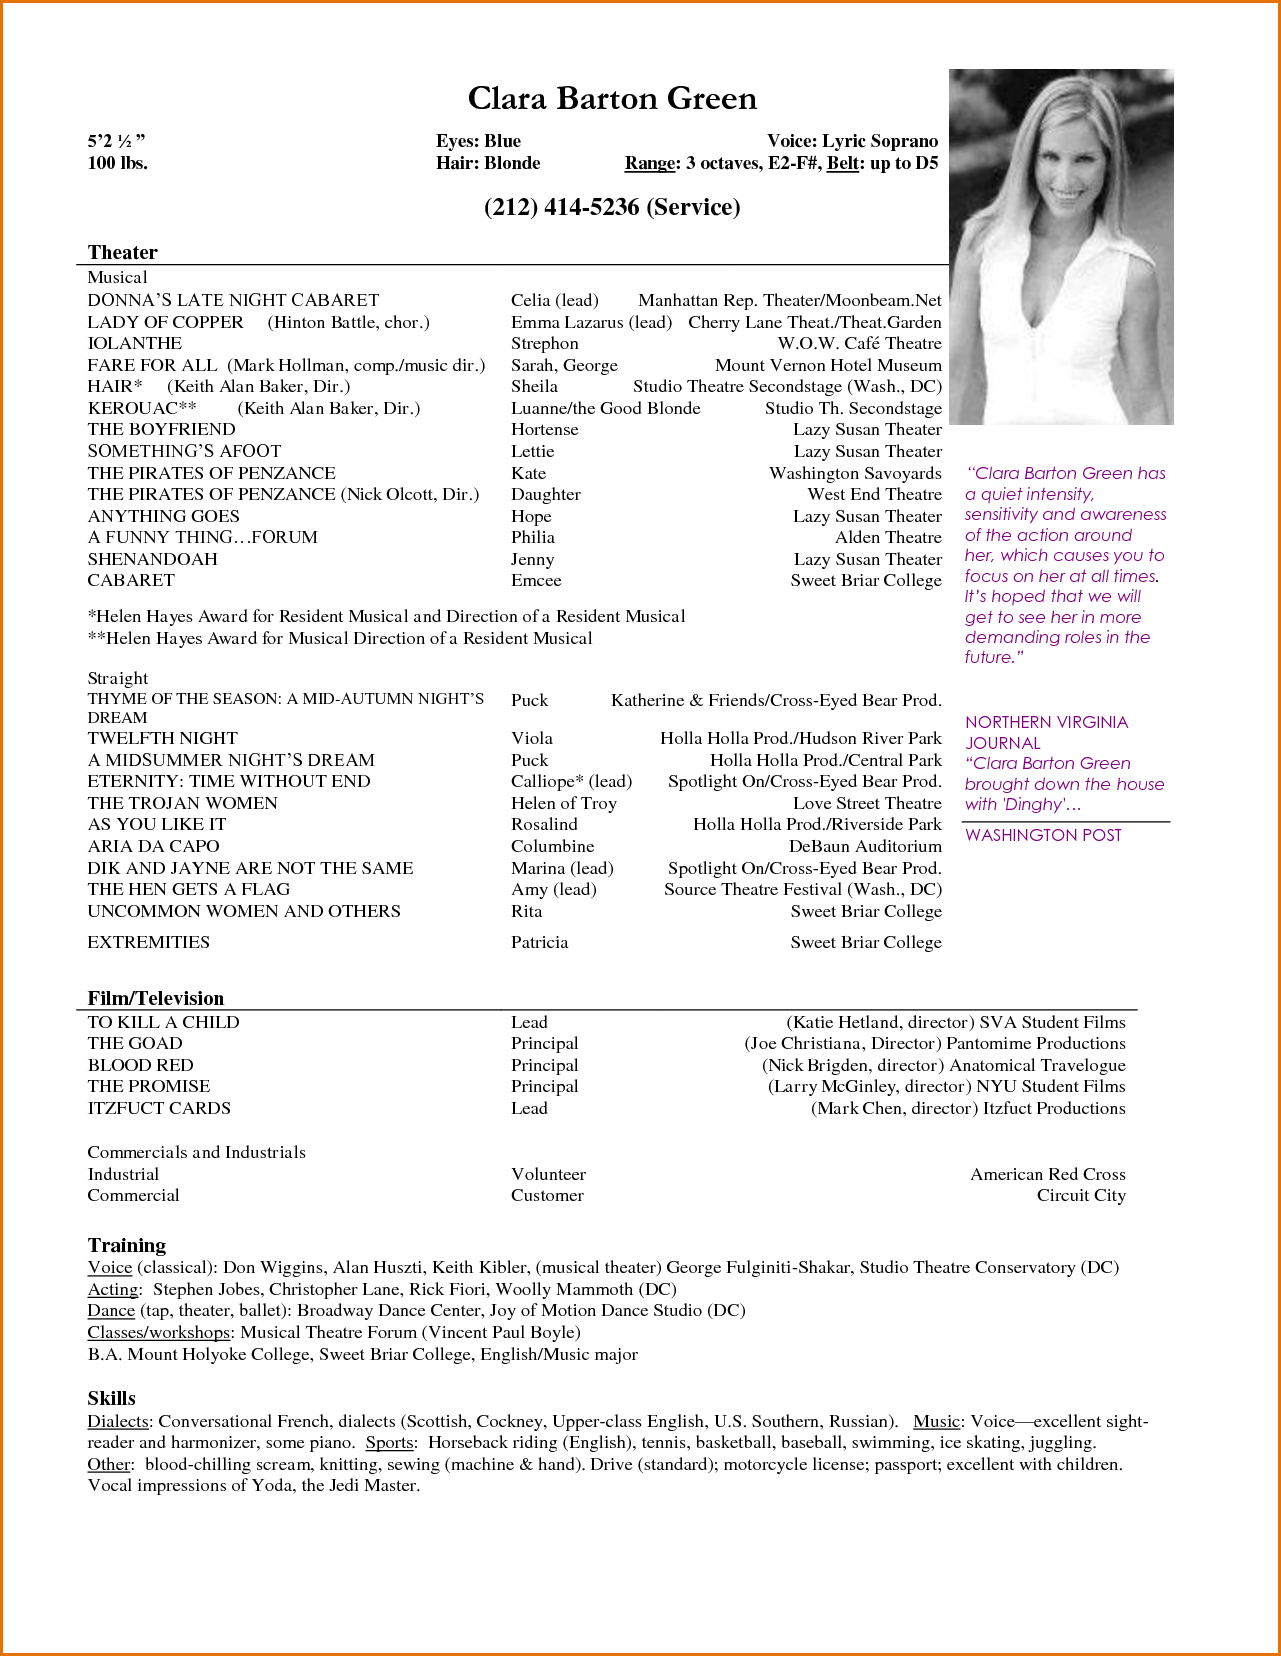 Resume Format Actor Resume Templates Acting Resume Acting Resume Template Resume Template